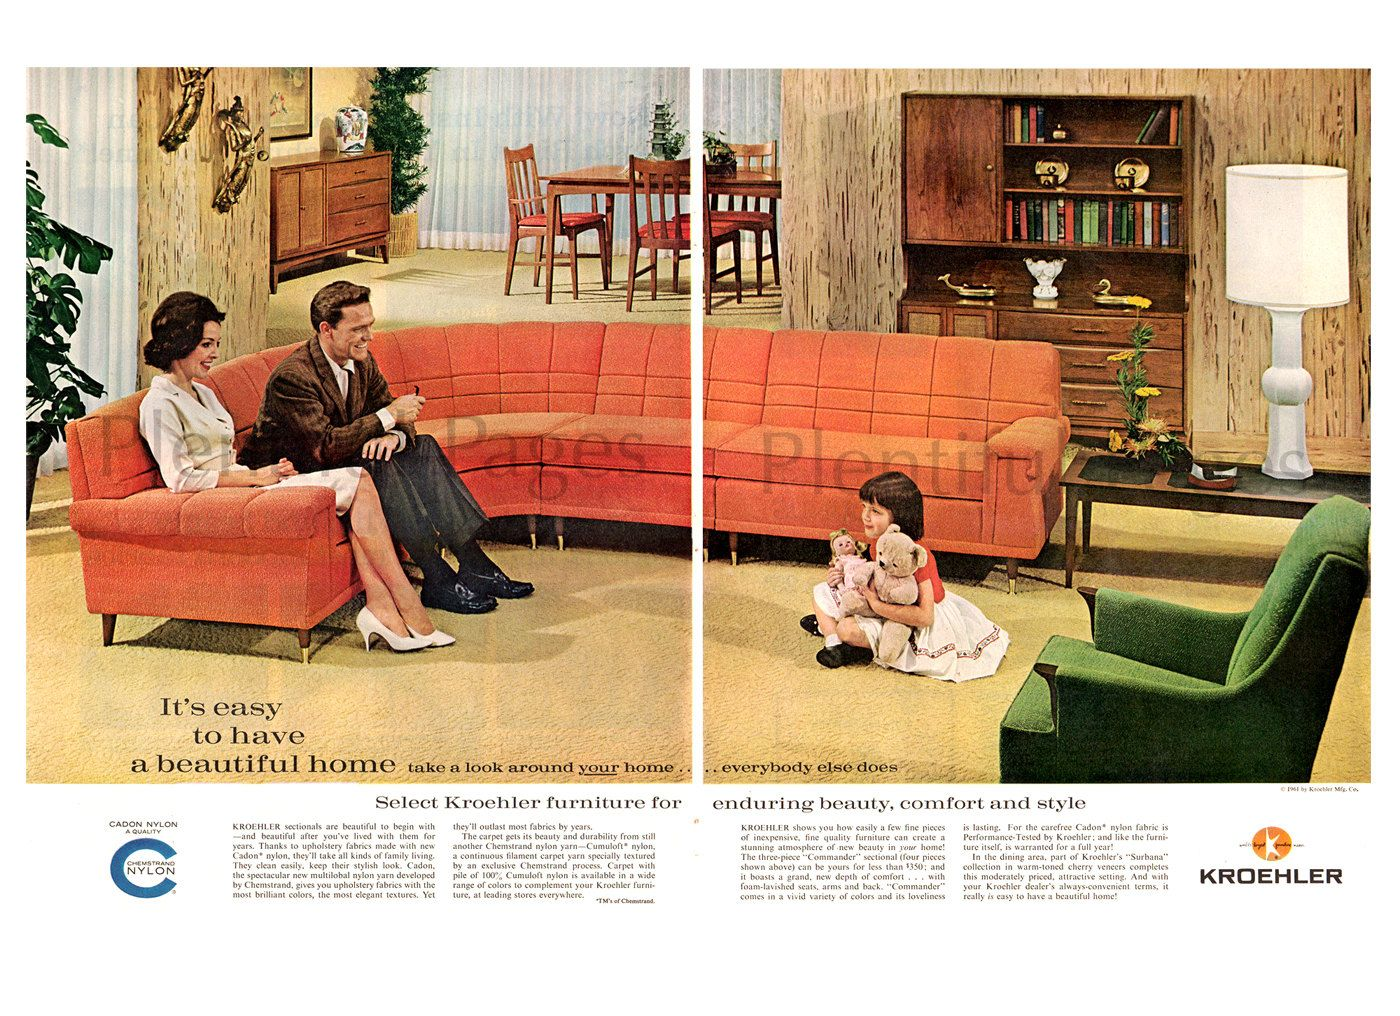 1960s Living Room With Orange Couch And Green Chair In